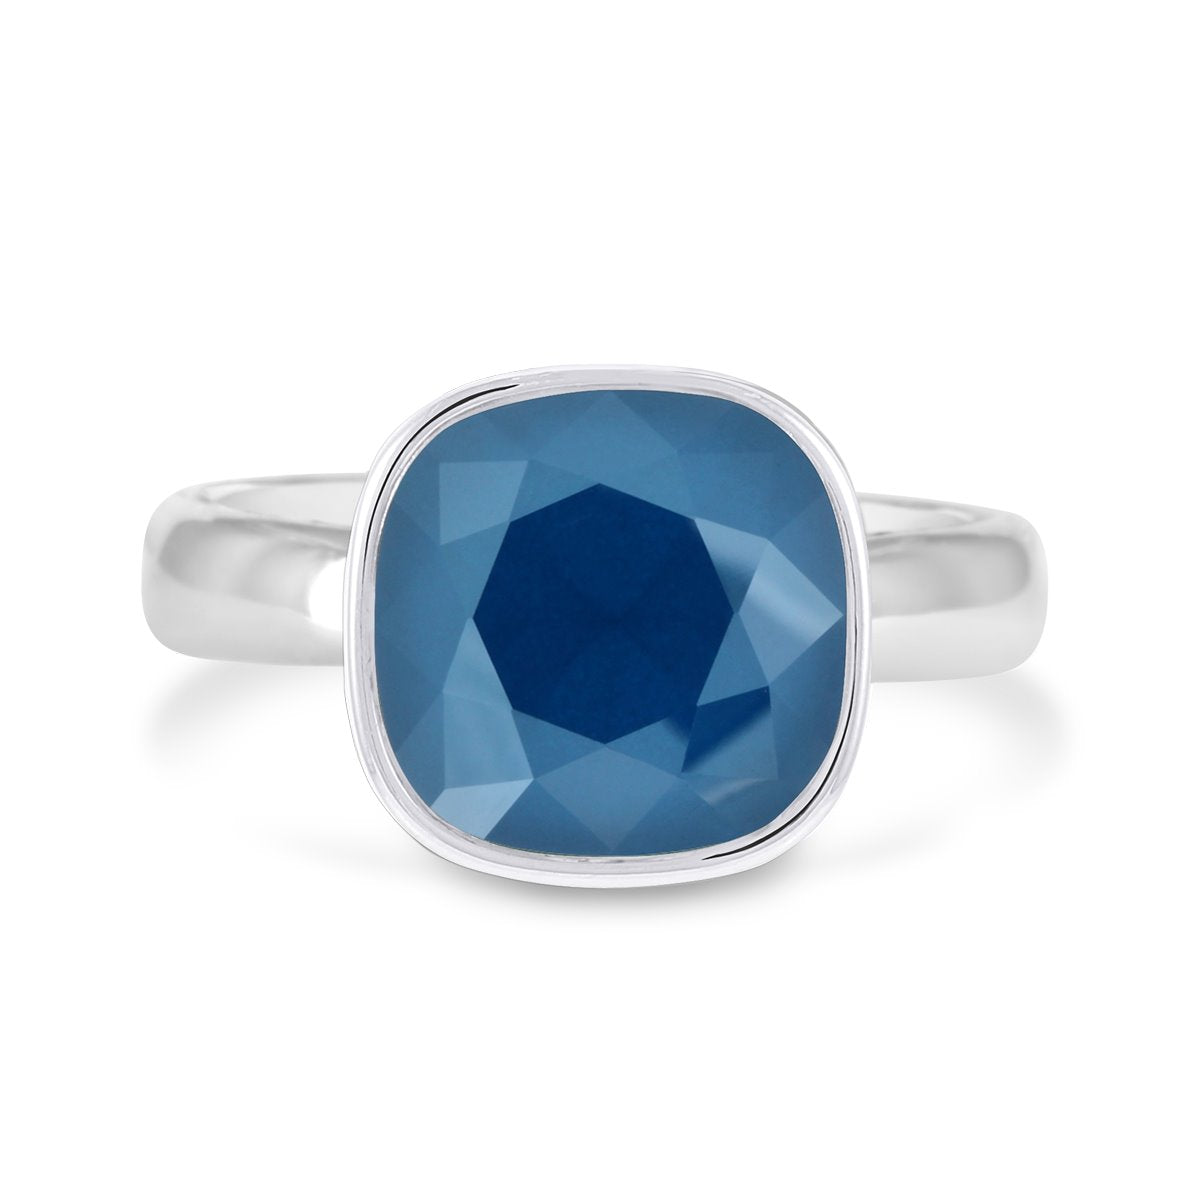 CUSHION SOLITAIRE RING ROYAL BLUE ESSENTIALS FOREVER CRYSTALS